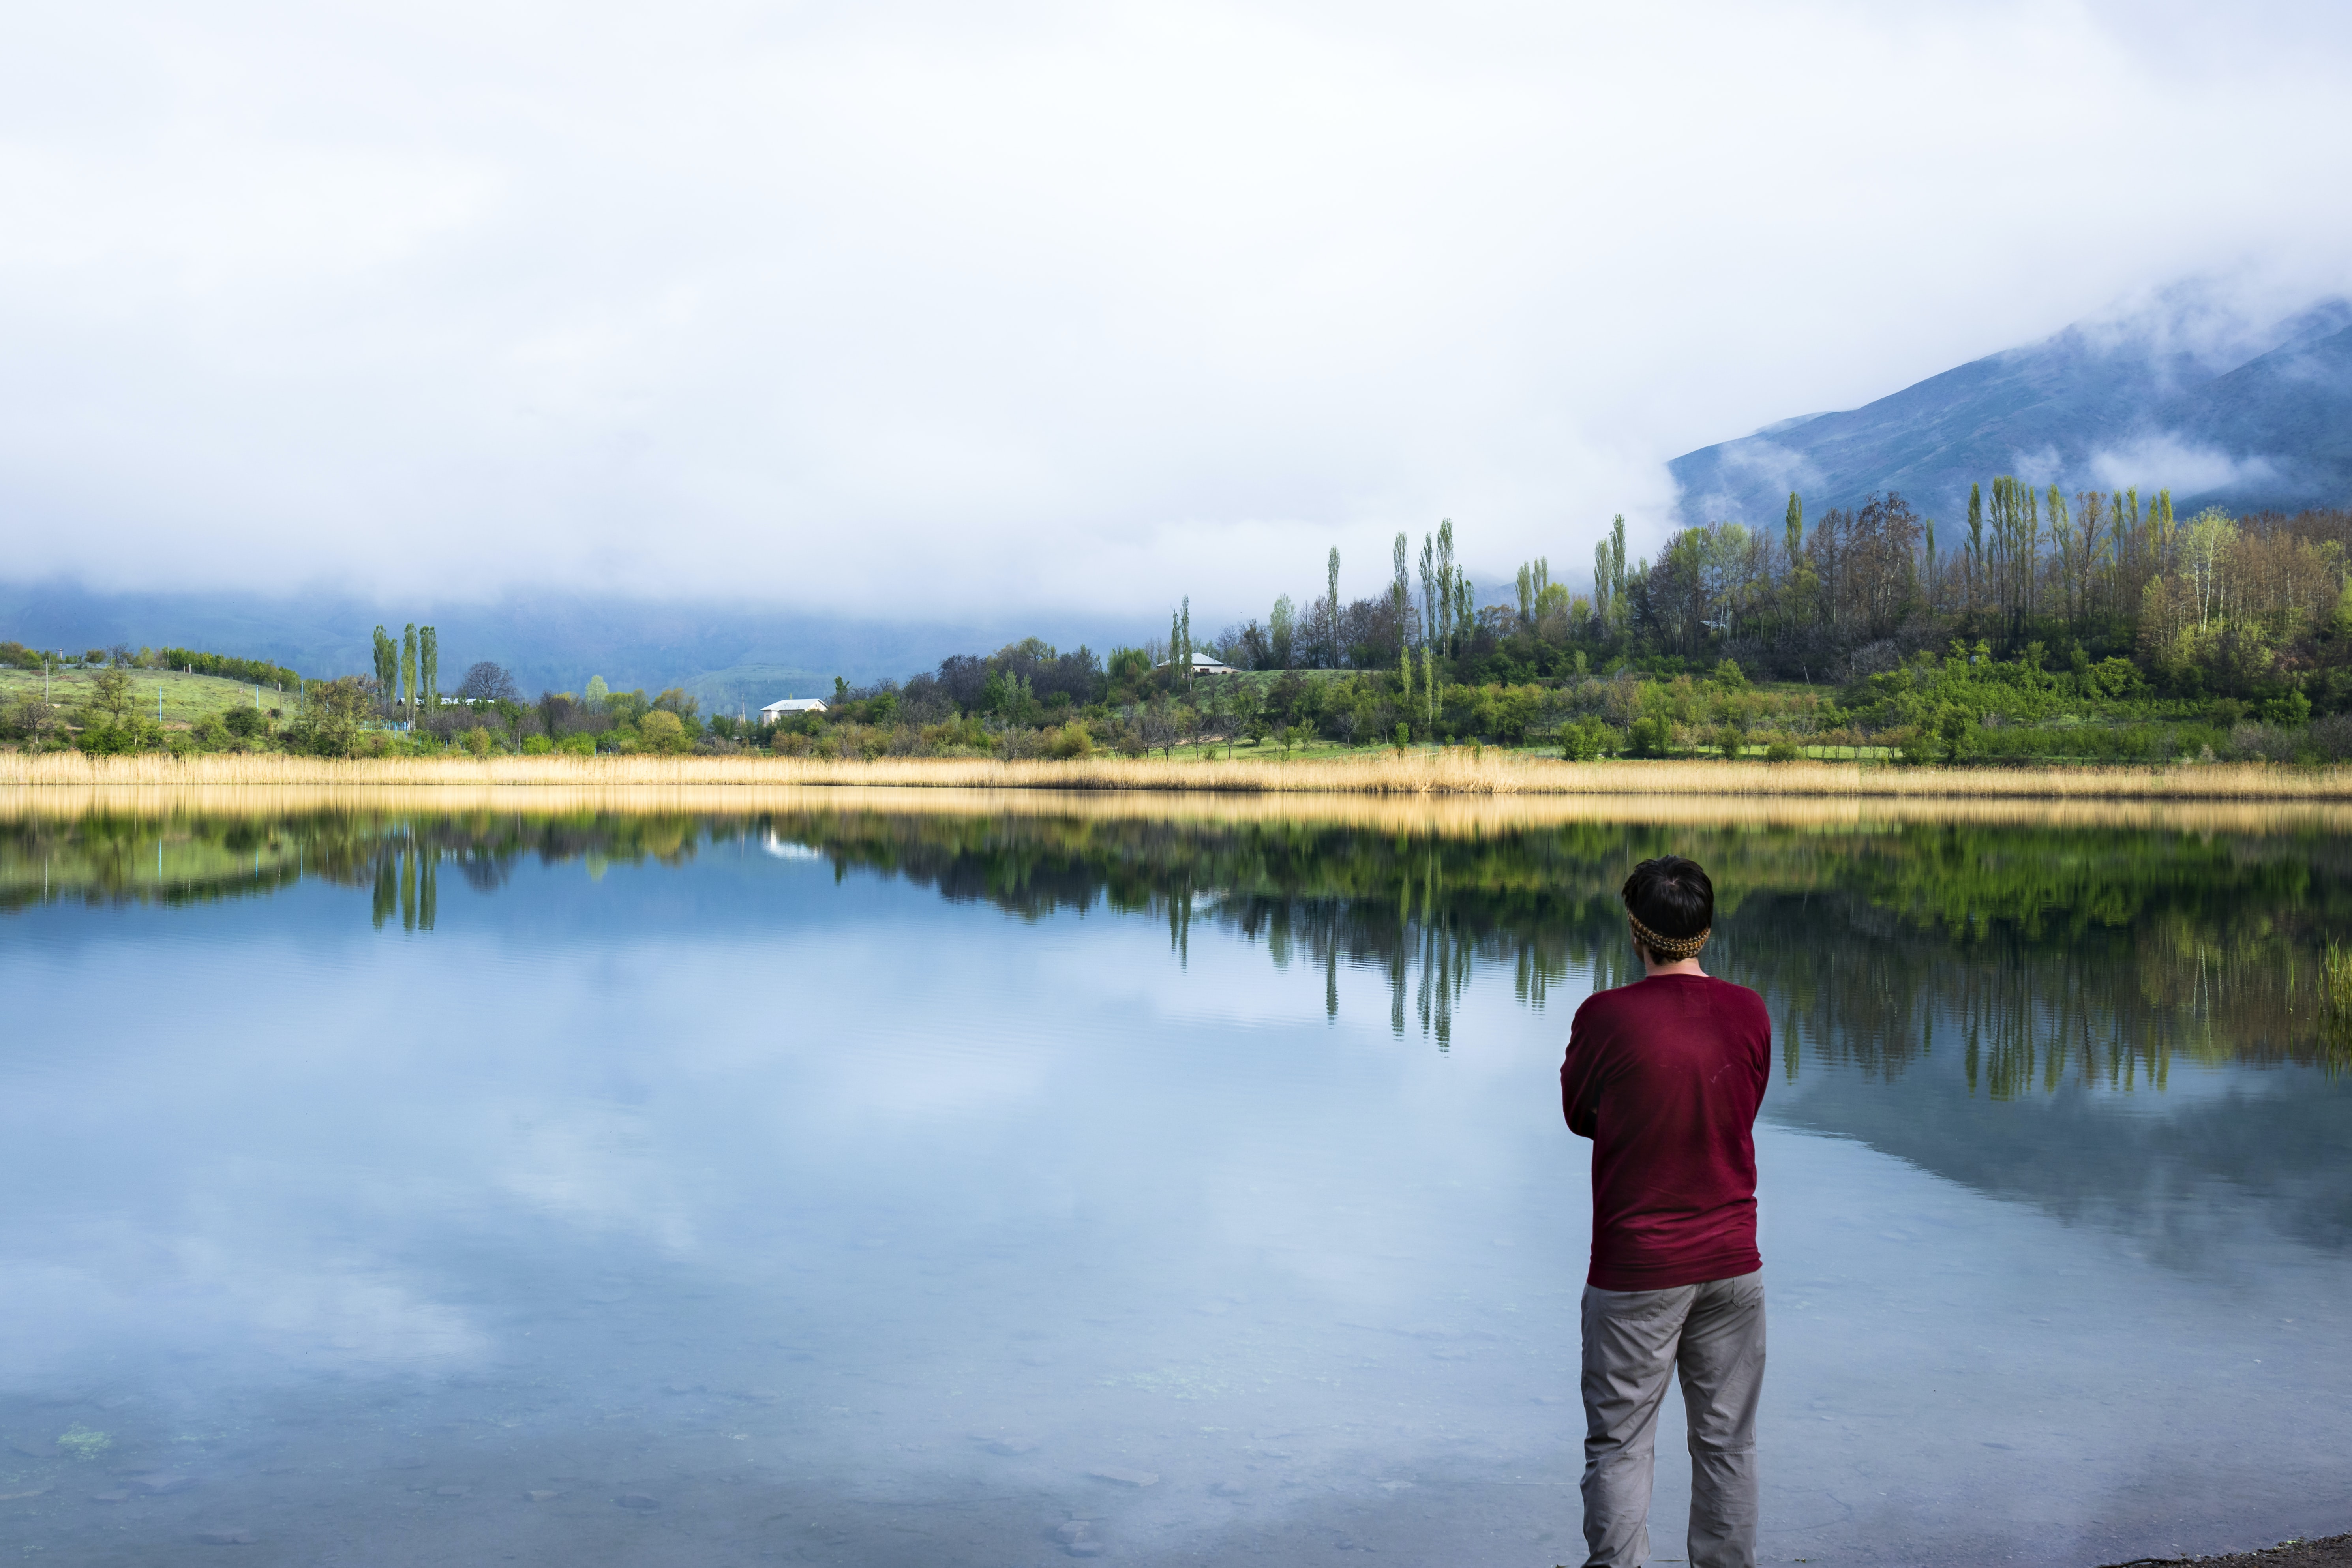 man standing near body of water and trees